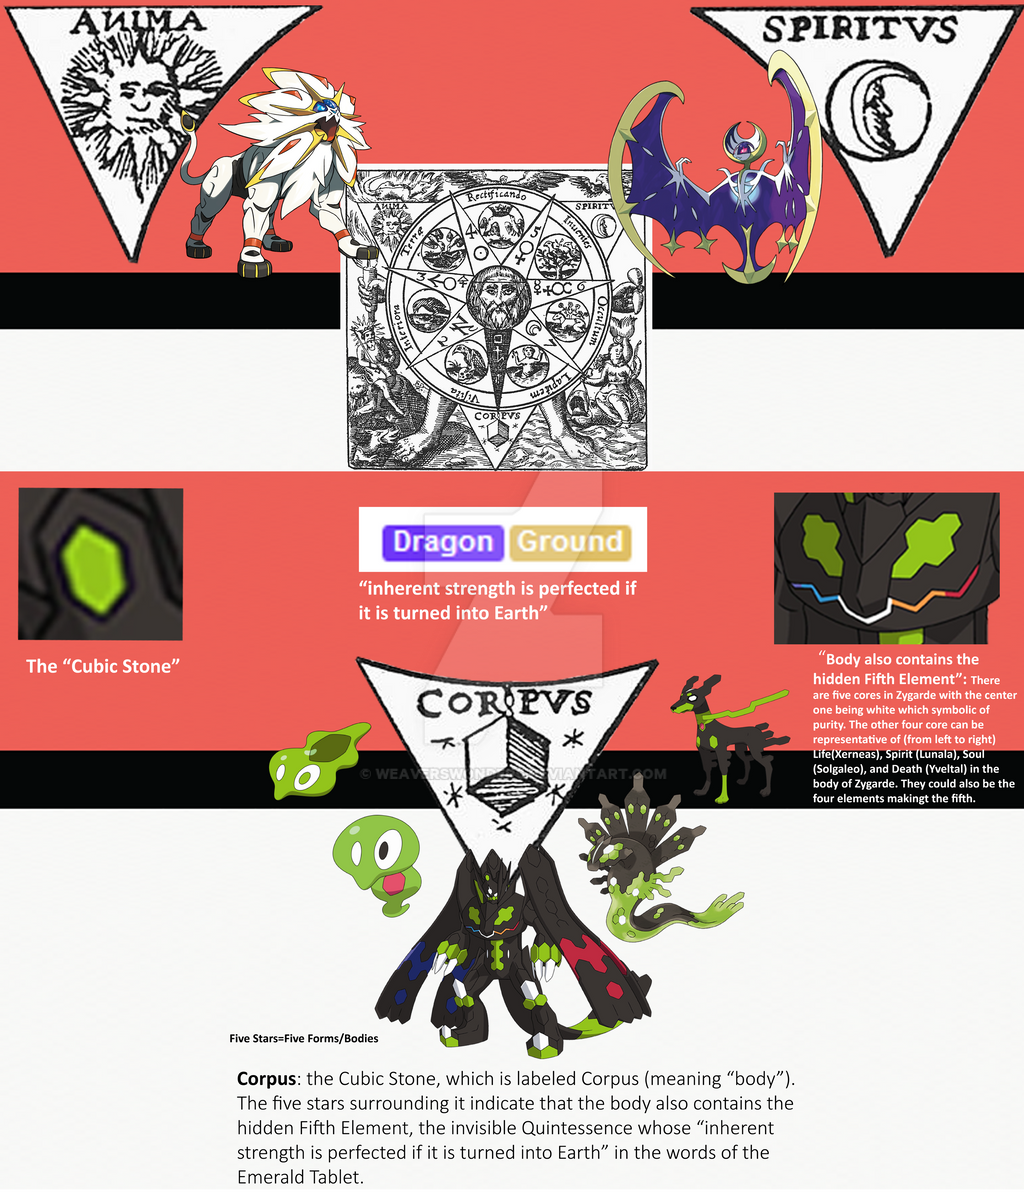 Zygarde's Connection (PKMN Sun/Moon Speculation) By